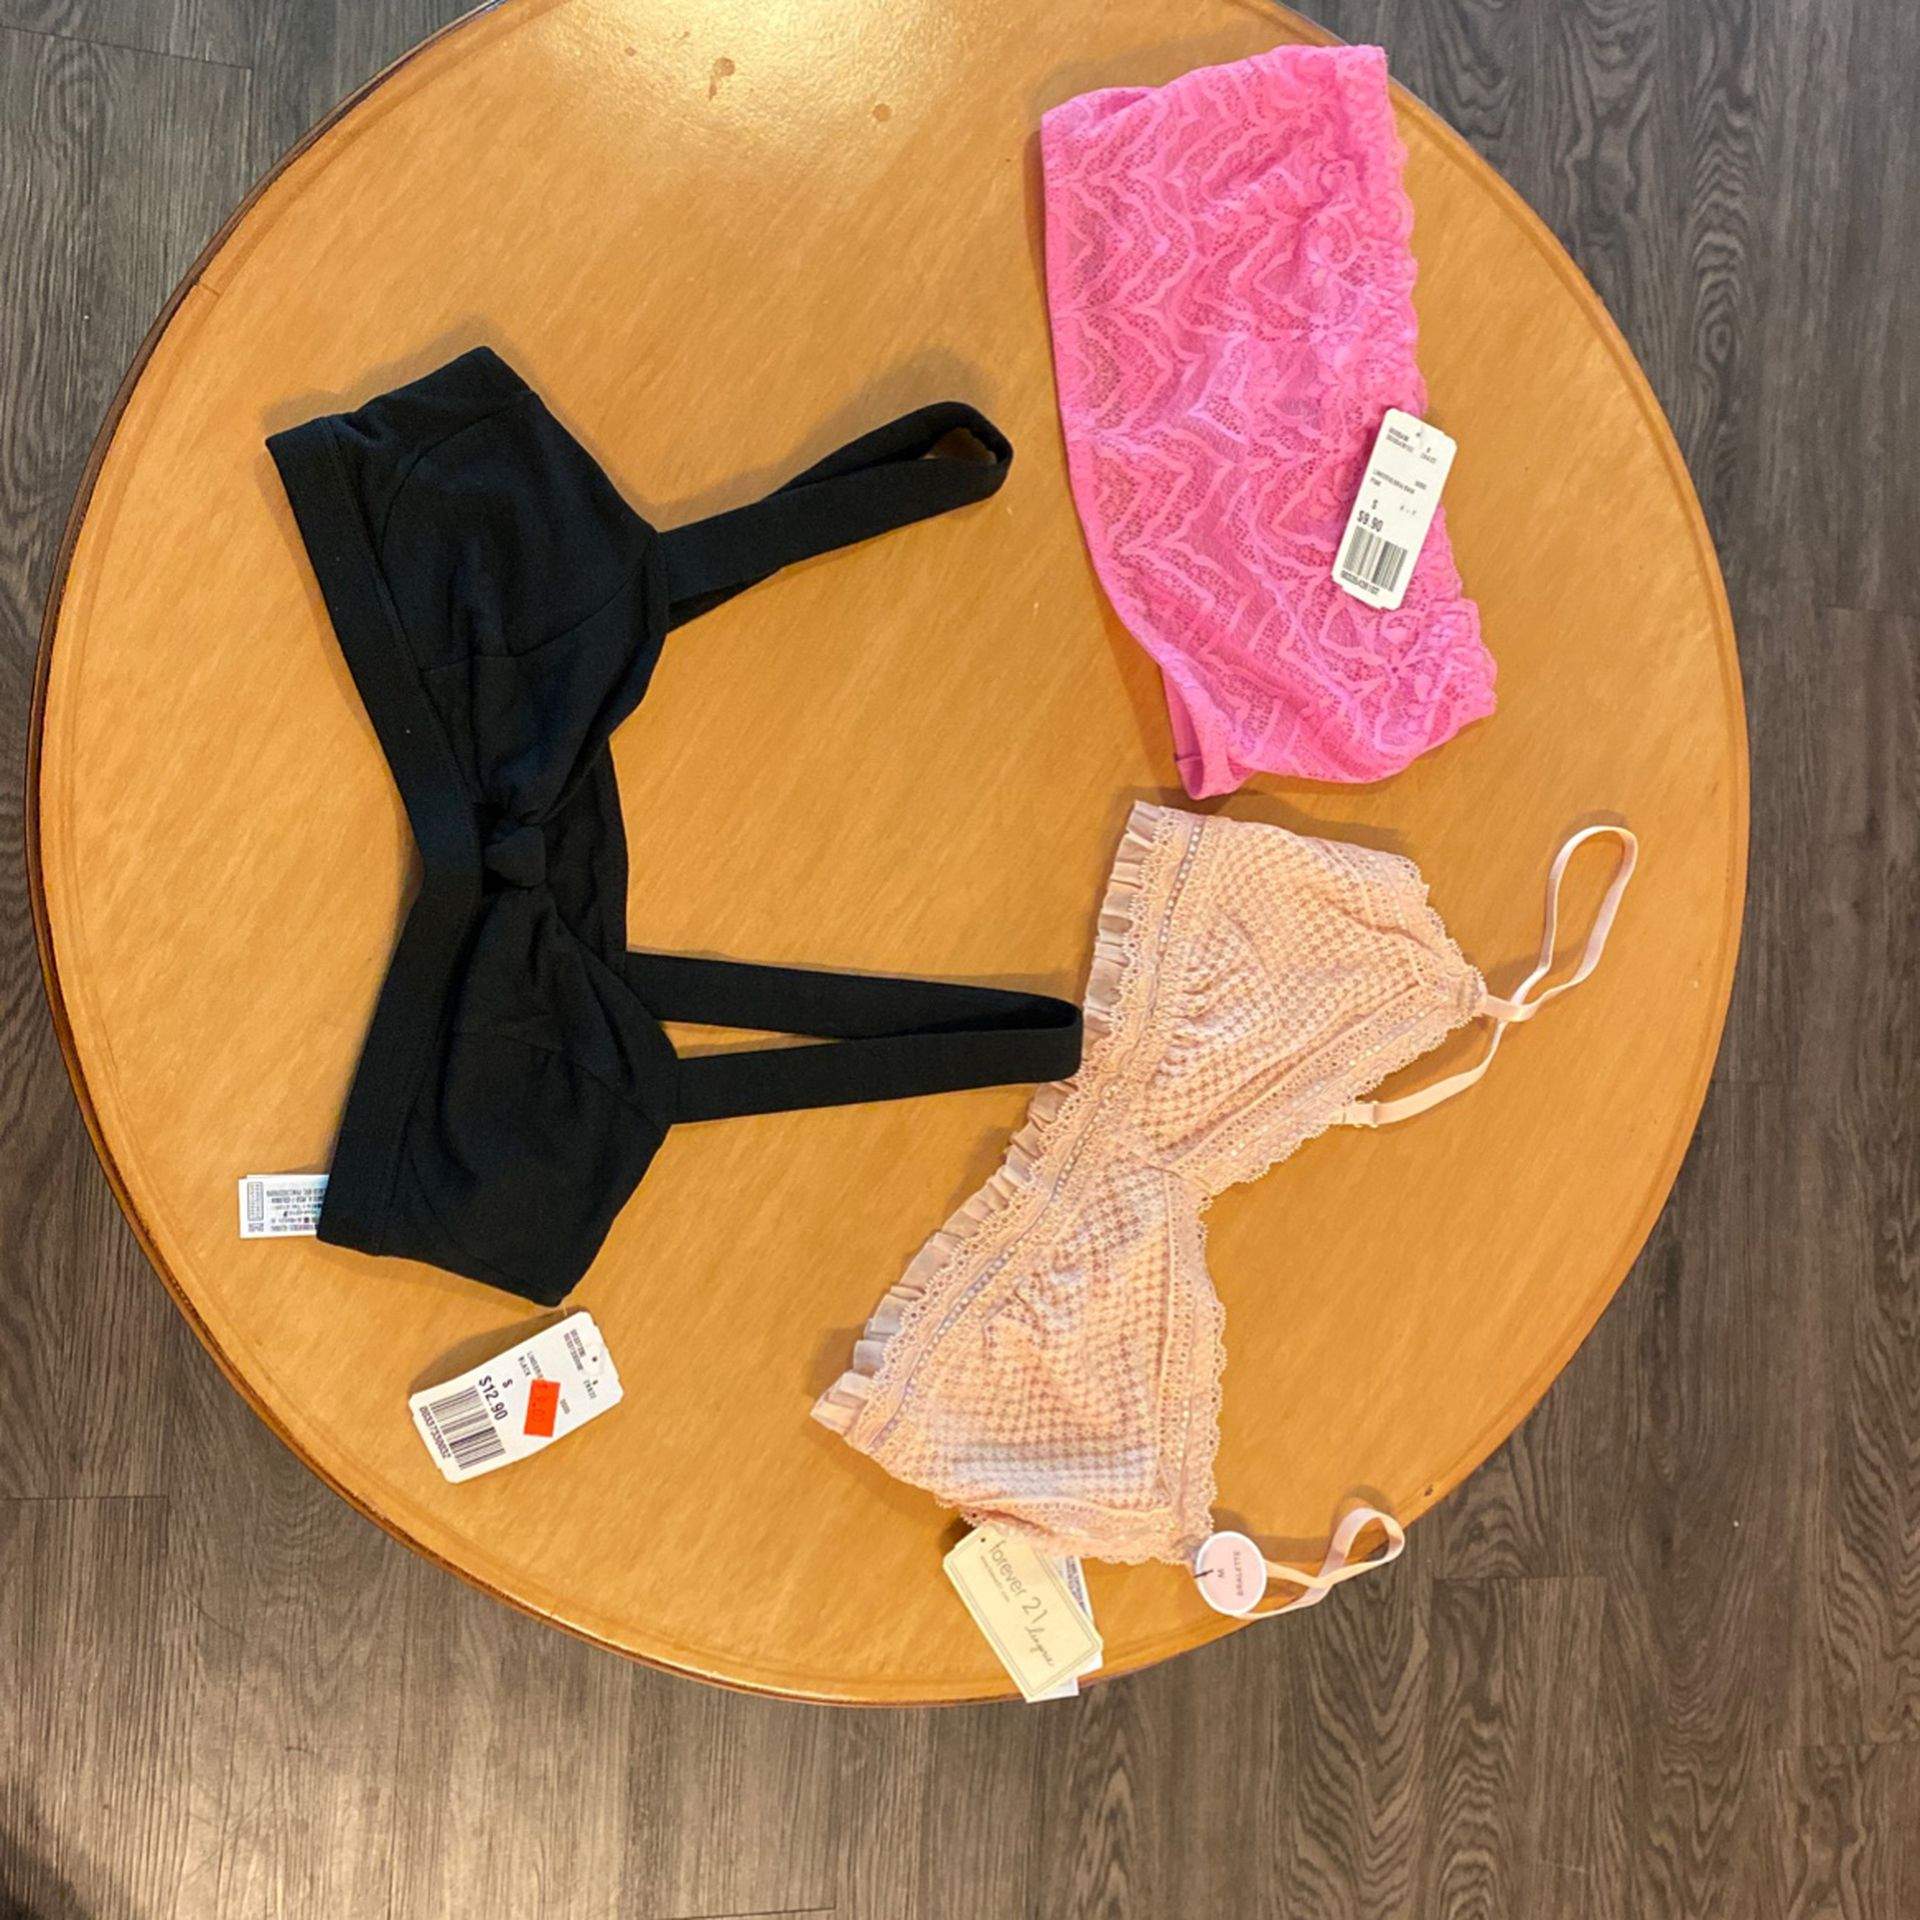 Forever 21 Lingerie Bundles 4$ Or 6 For 20$ Assorted Sizes And Colors